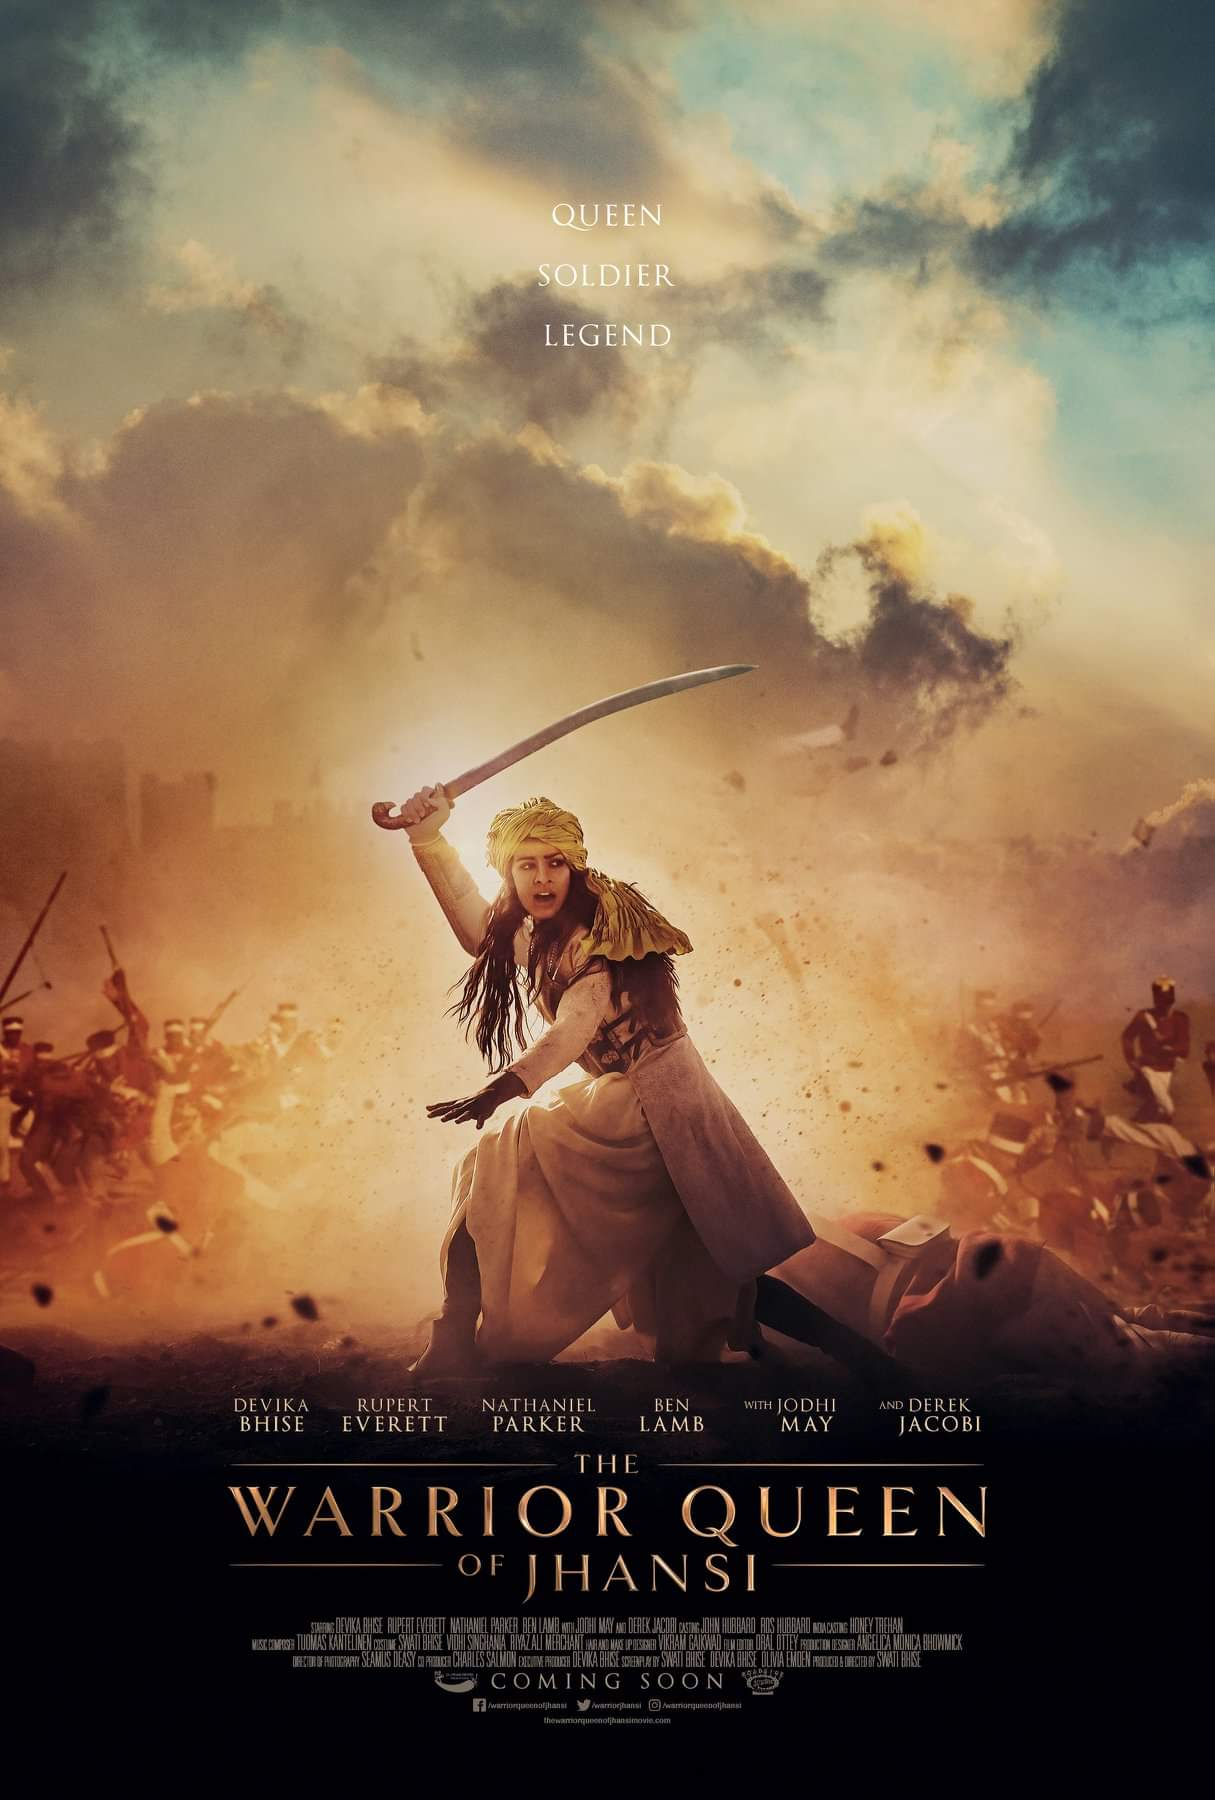 The Warrior Queen of Jhansi (2019) English 720p HEVC HDRip  x265 AAC ESubs (500MB) Full Movie Download